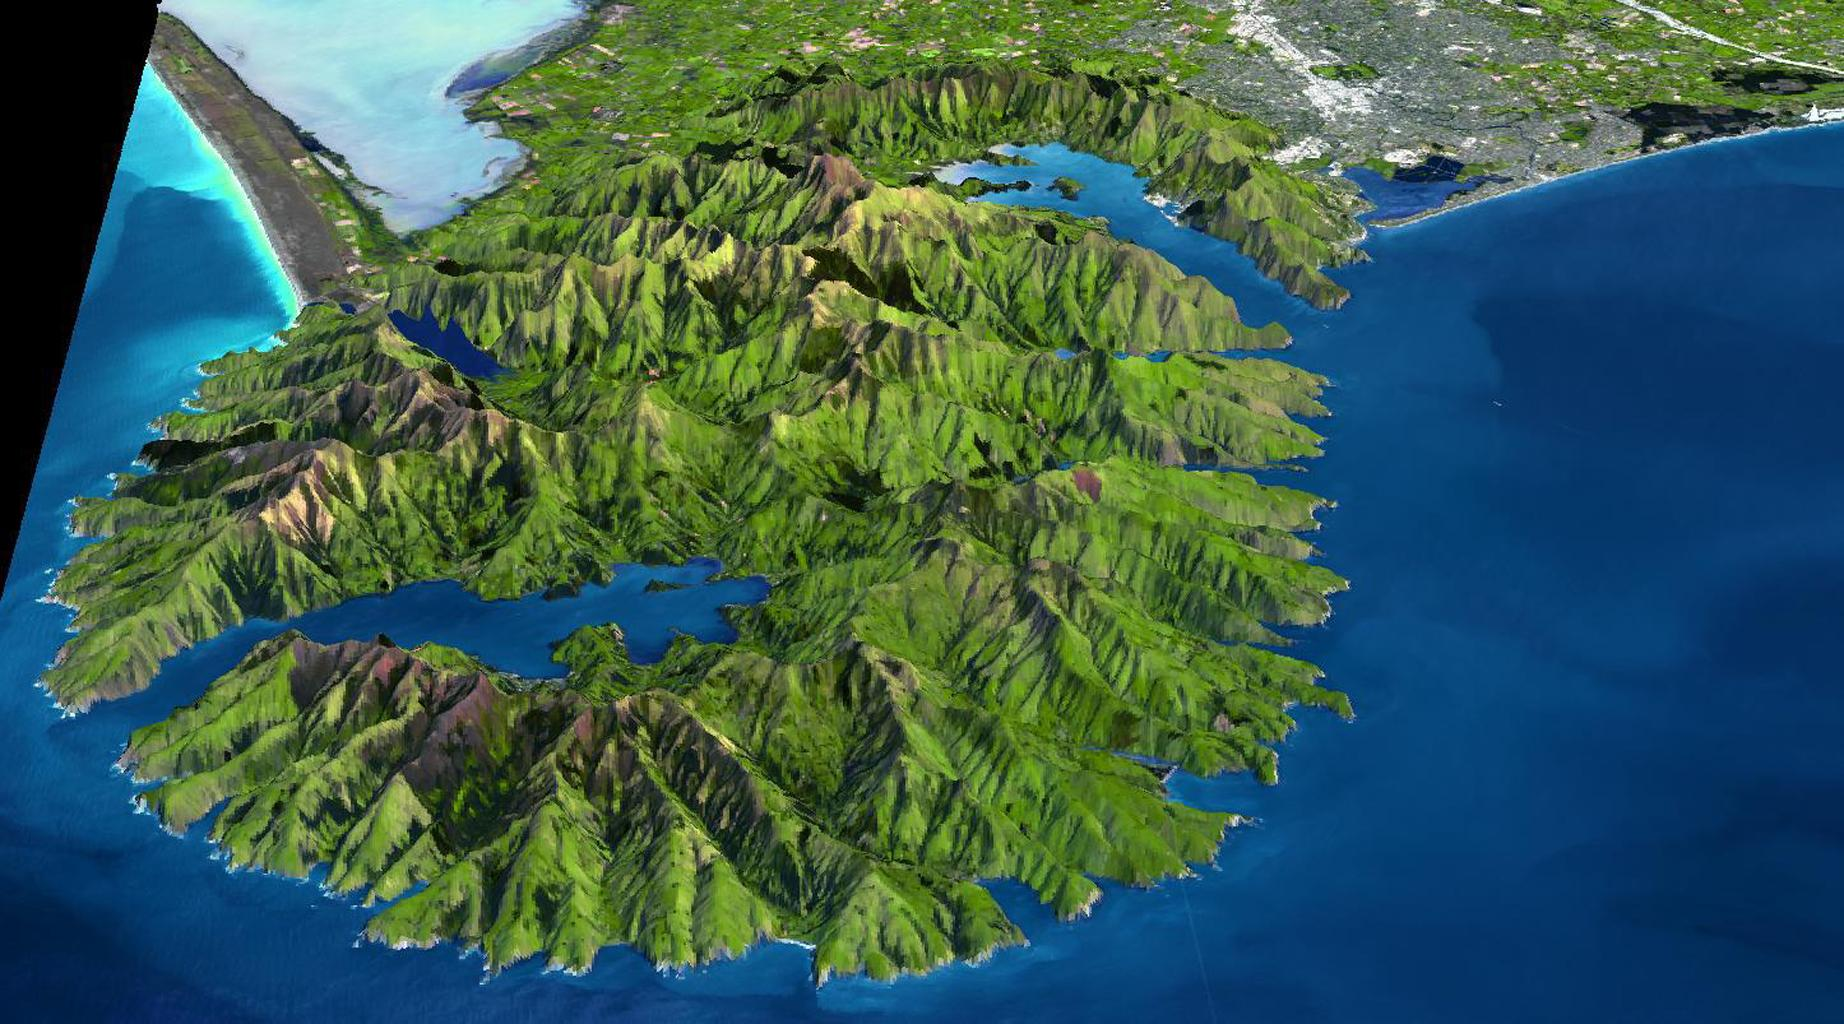 The Banks Peninsula, New Zealand was created by volcanic activity in the Miocene epoch about 10 million years ago. This image is from NASA's Terra spacecraft.